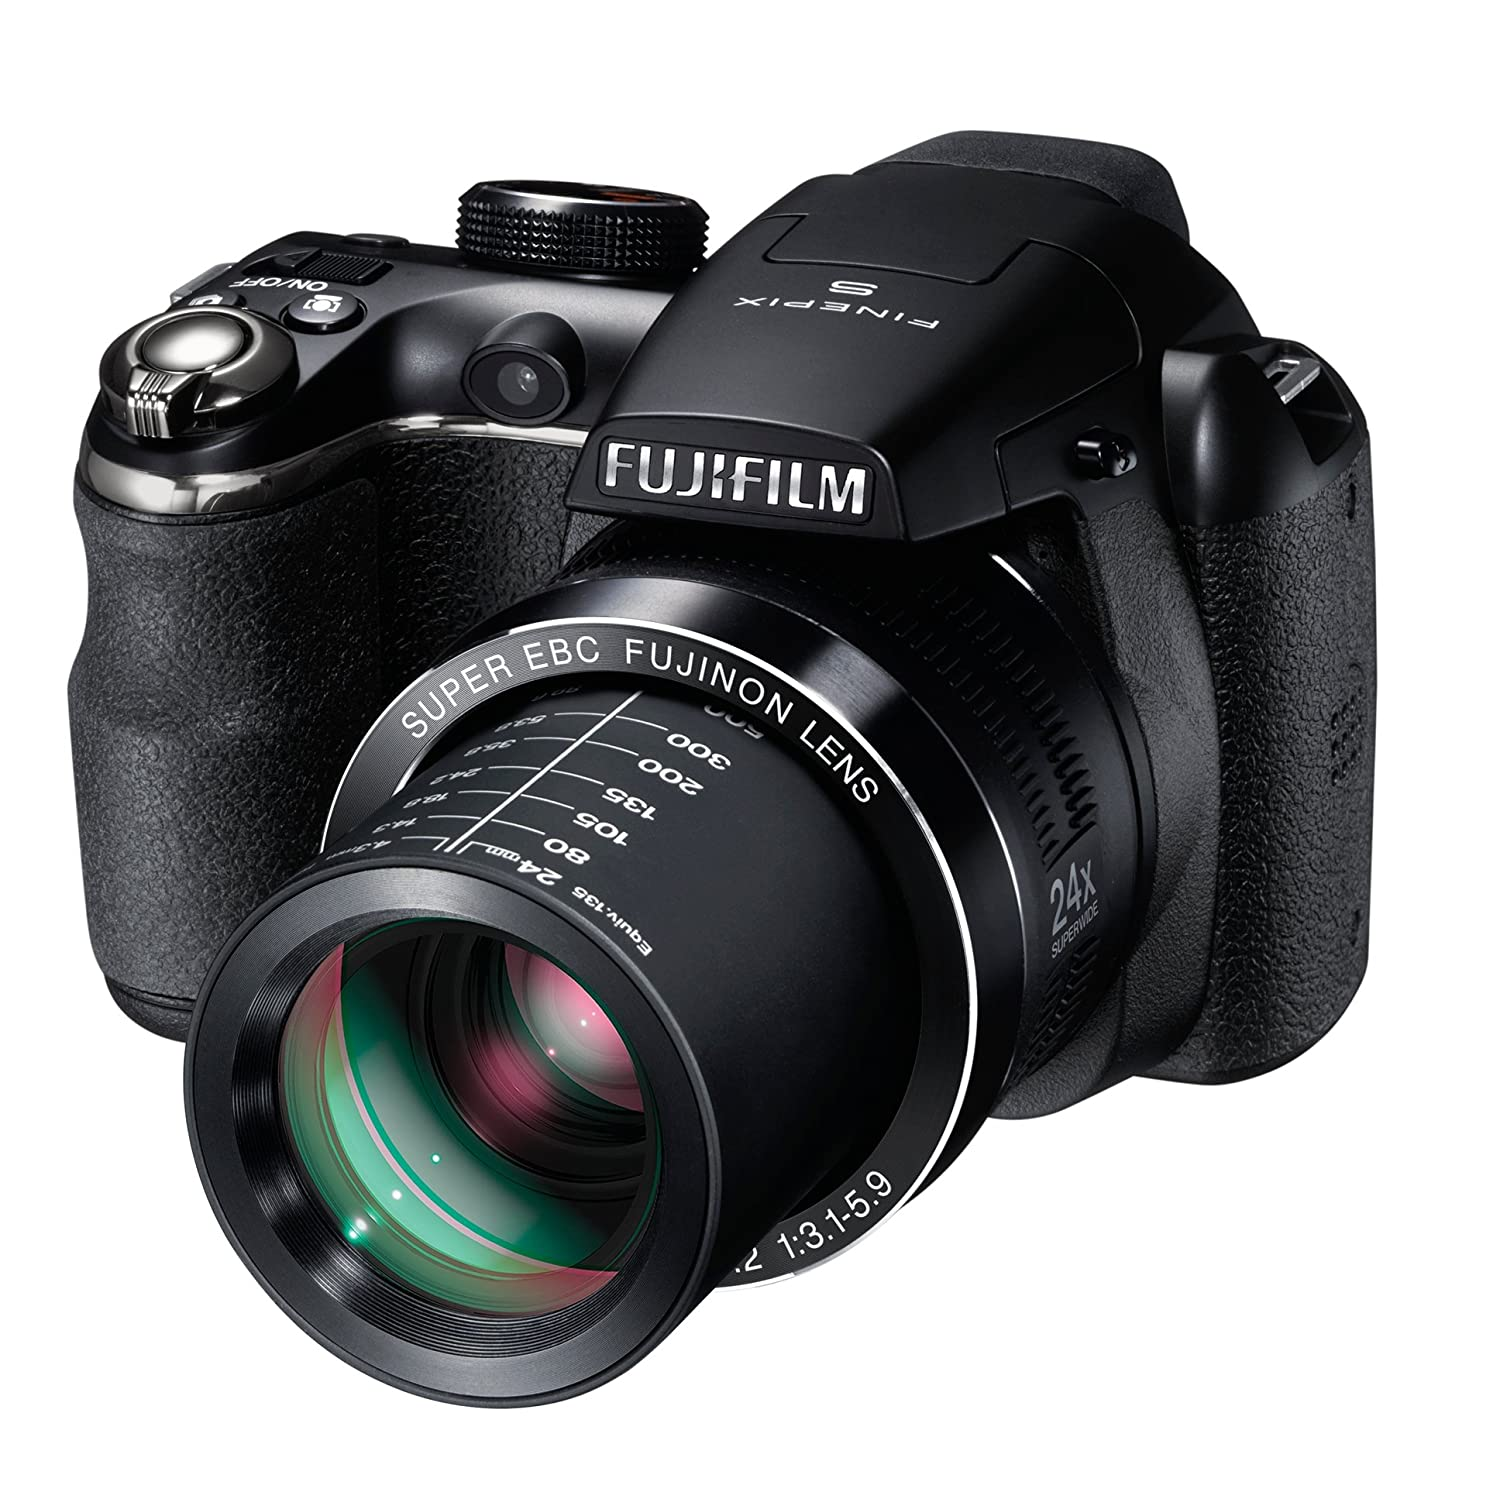 Amazon.com : Fujifilm FinePix S4200 Digital Camera : Point And ...